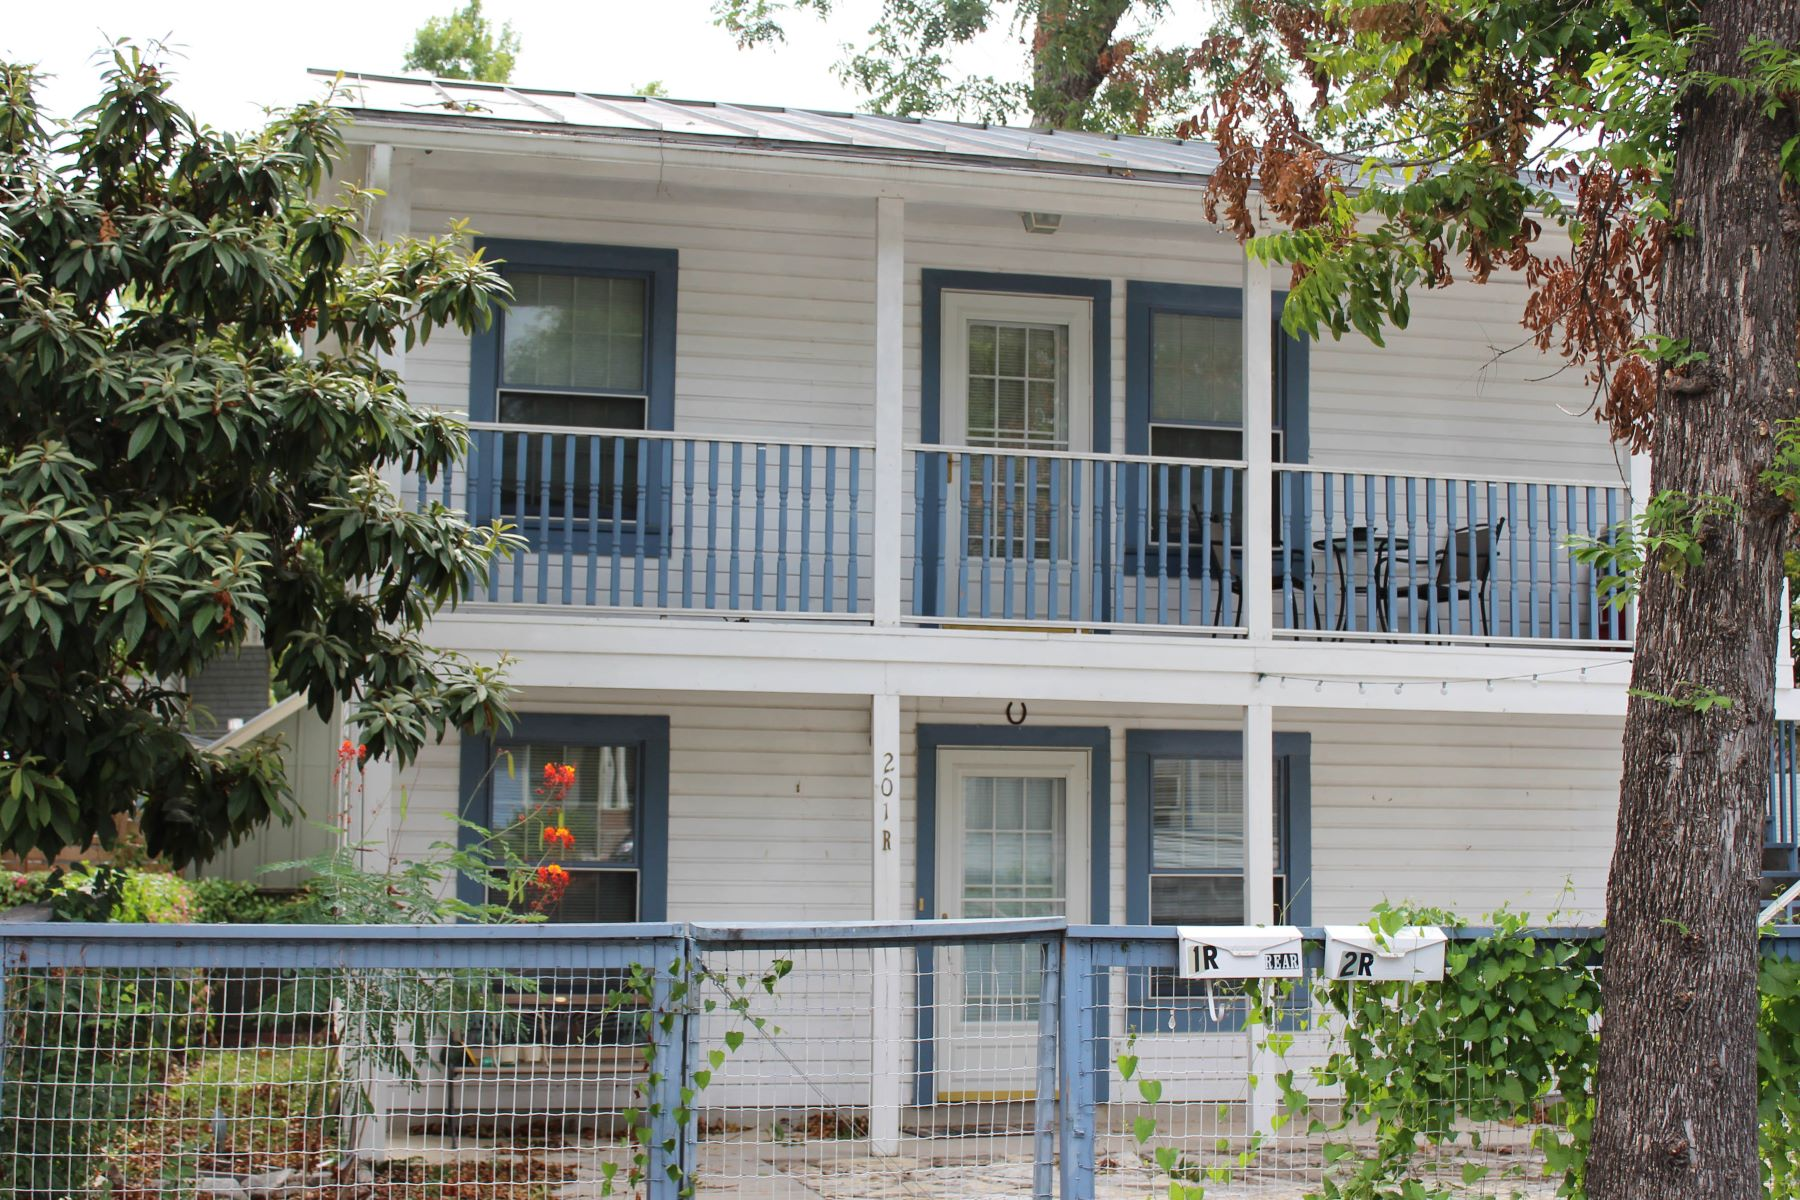 Single Family Home for Rent at 201 Wickes St 201 Wickes St 1R San Antonio, Texas 78210 United States